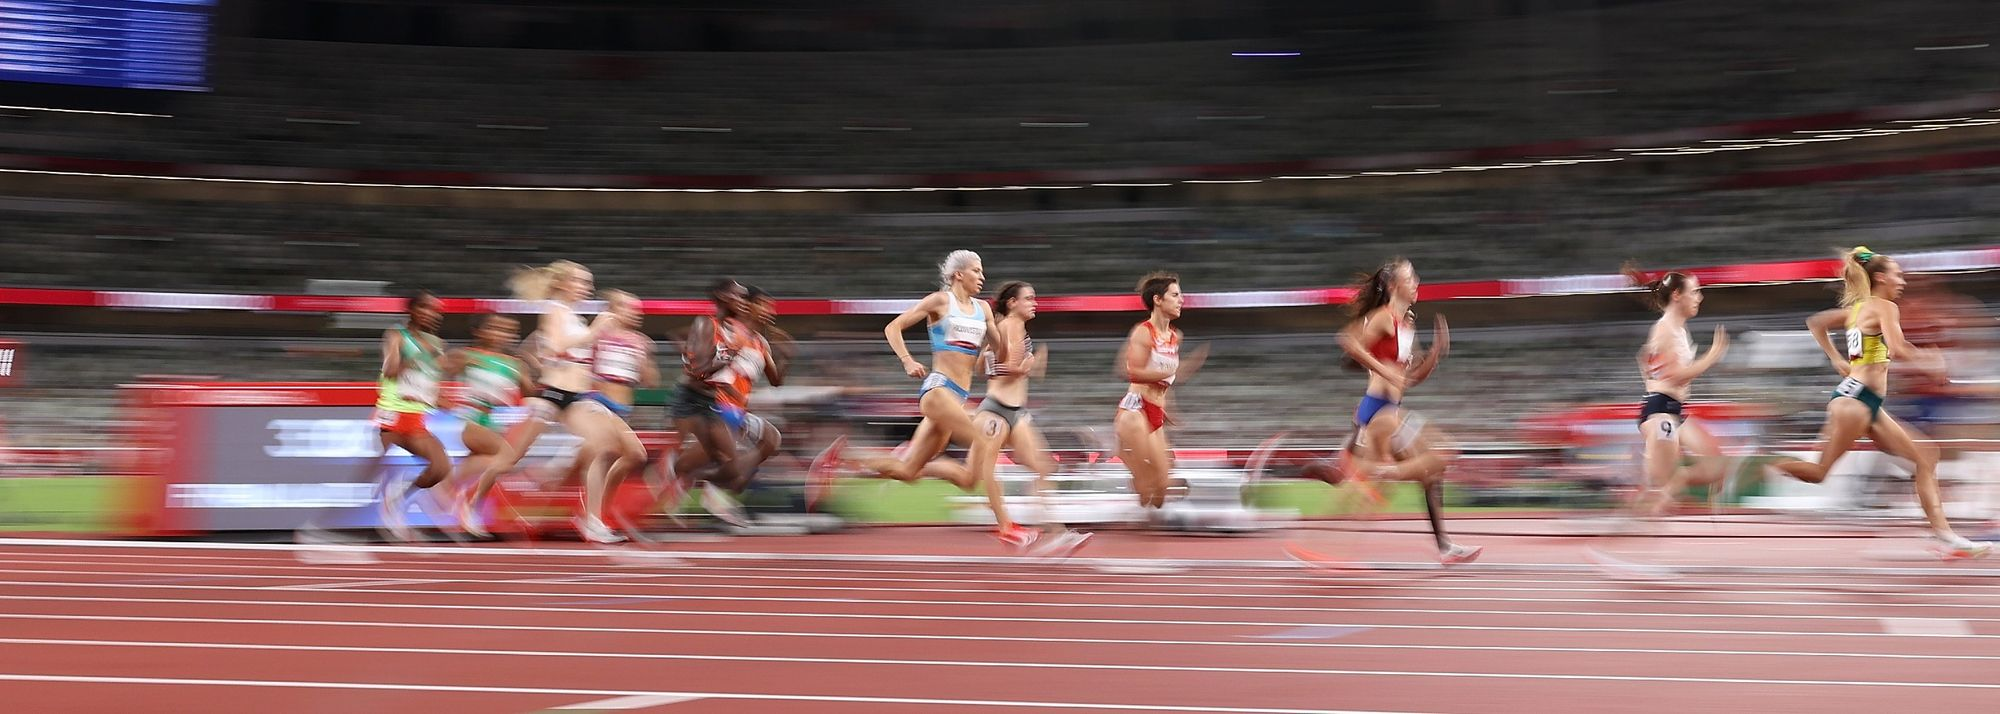 Day eight at the Tokyo 2020 Olympic Games is full of finals – starting with the men's 50km race walk and coming to a close with the 4x100m relays.